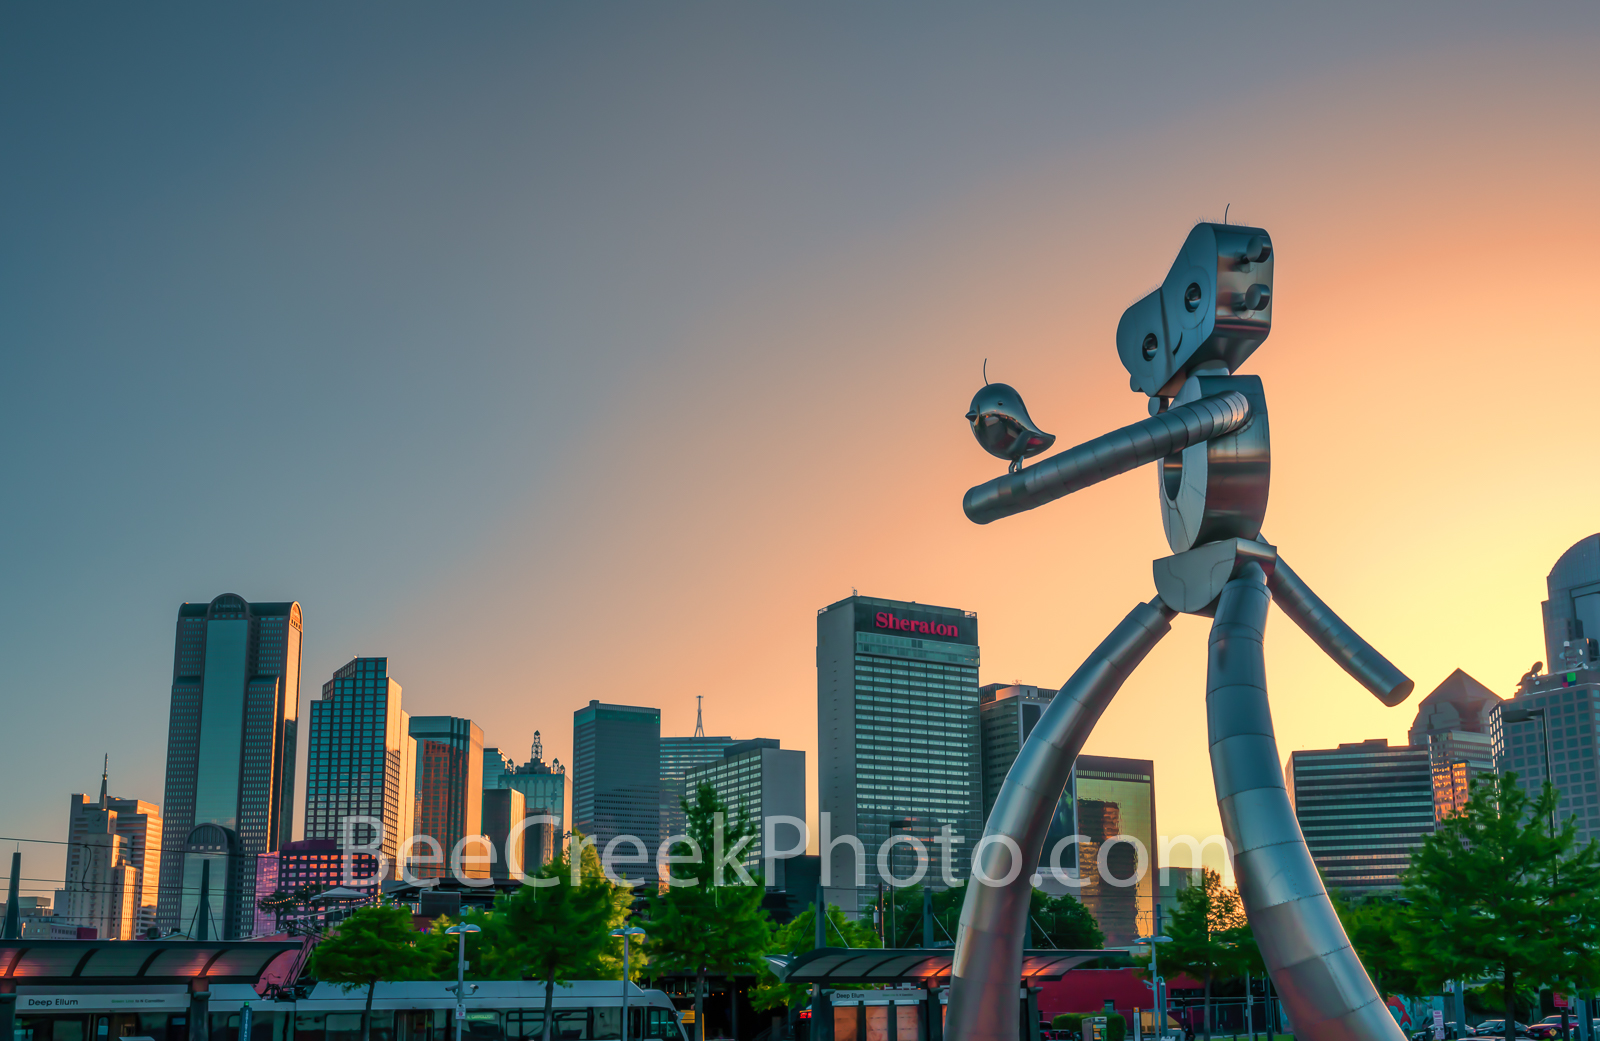 Dallas skyline, traveling man, dallas, skyline, sunset, train, mass transit, scuplture, robot, strolling, bird, birds, Deep Ellum, cityscape, cityscapes, images of dallas, photos of dallas, pictures o, photo